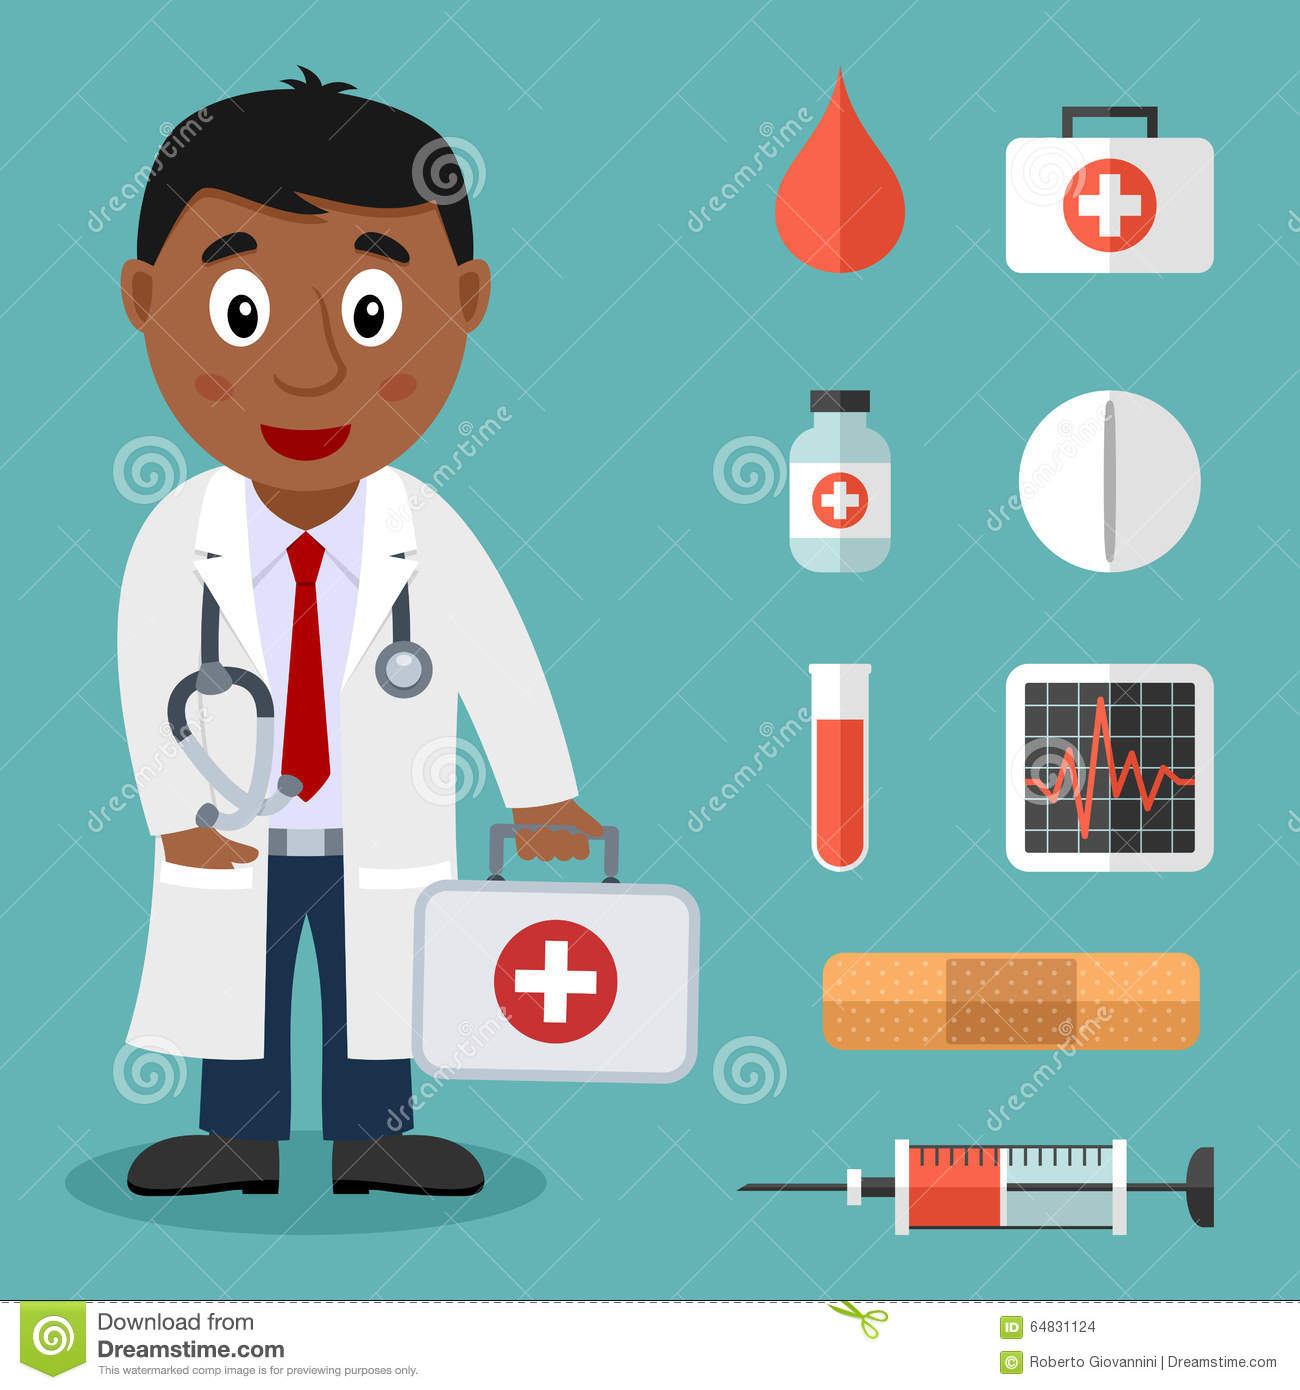 Black Male Doctor and Flat Medical Icons